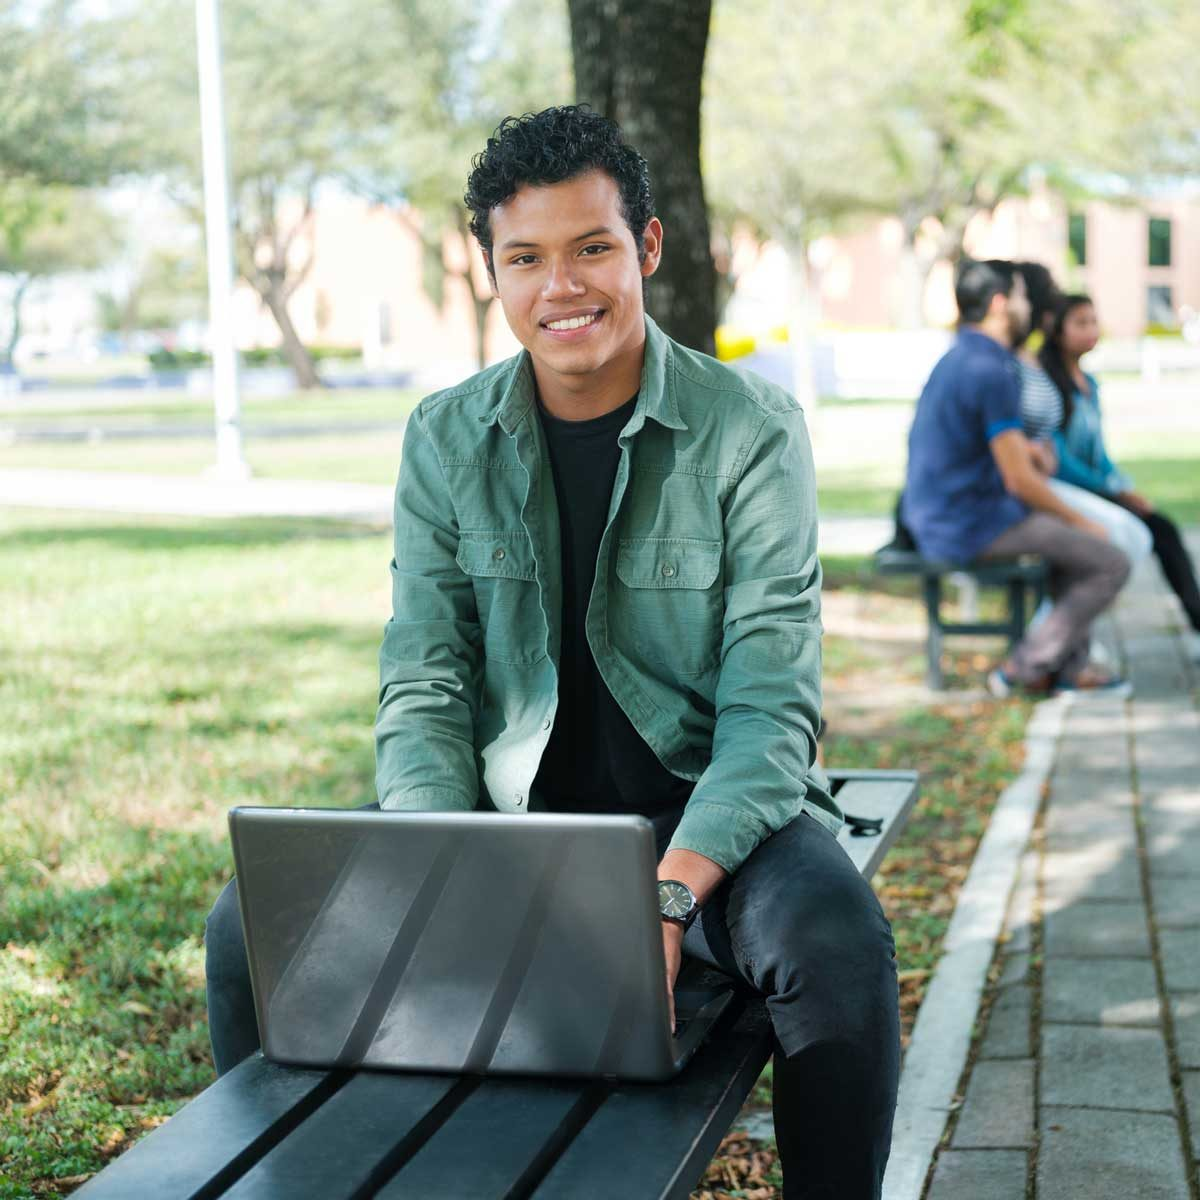 College student sitting outside with a laptop